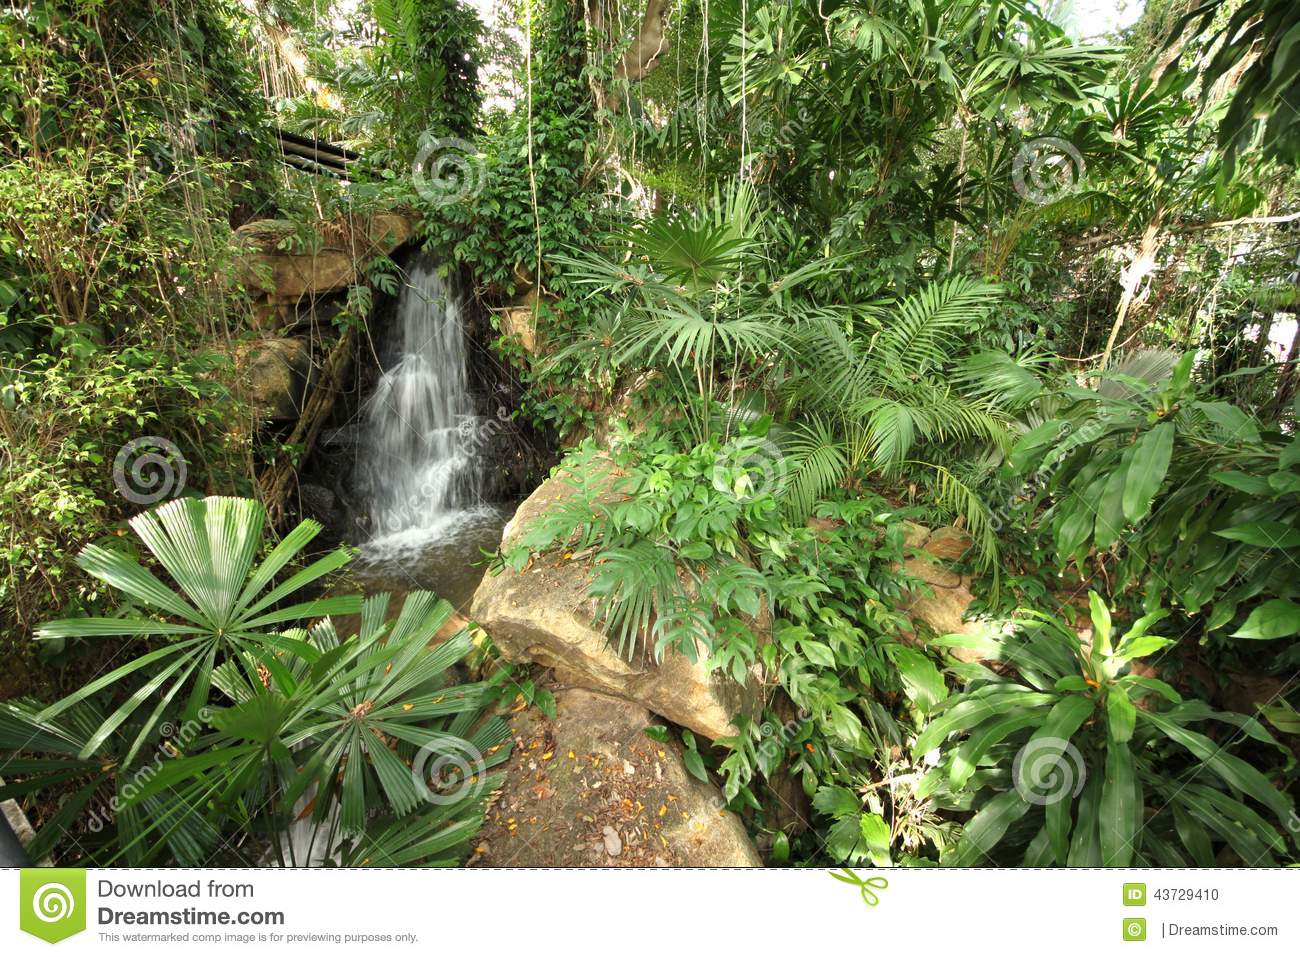 pedras jardim botanico:Waterfall Tropical Garden Plants and Flowers